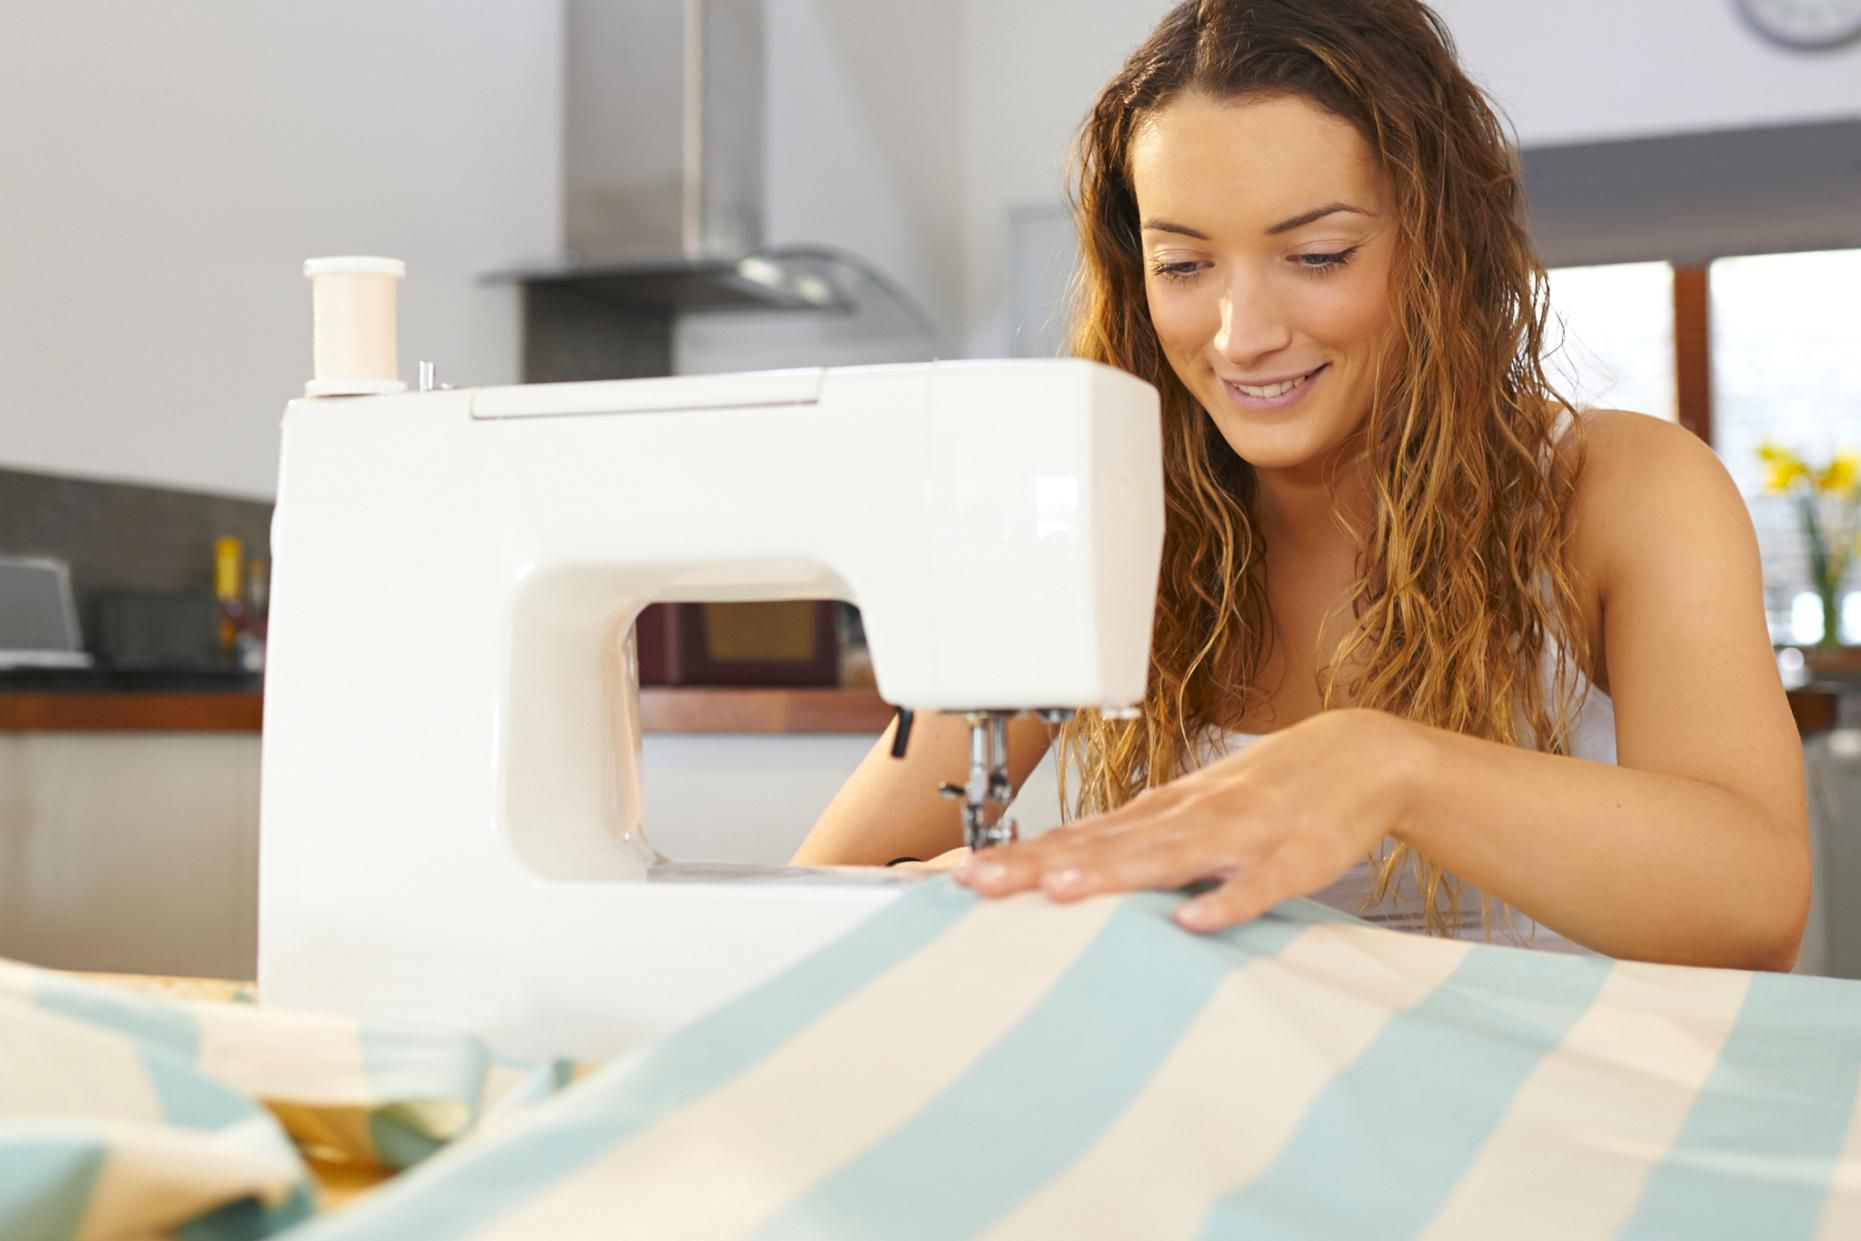 Woman using sewing machine at home.